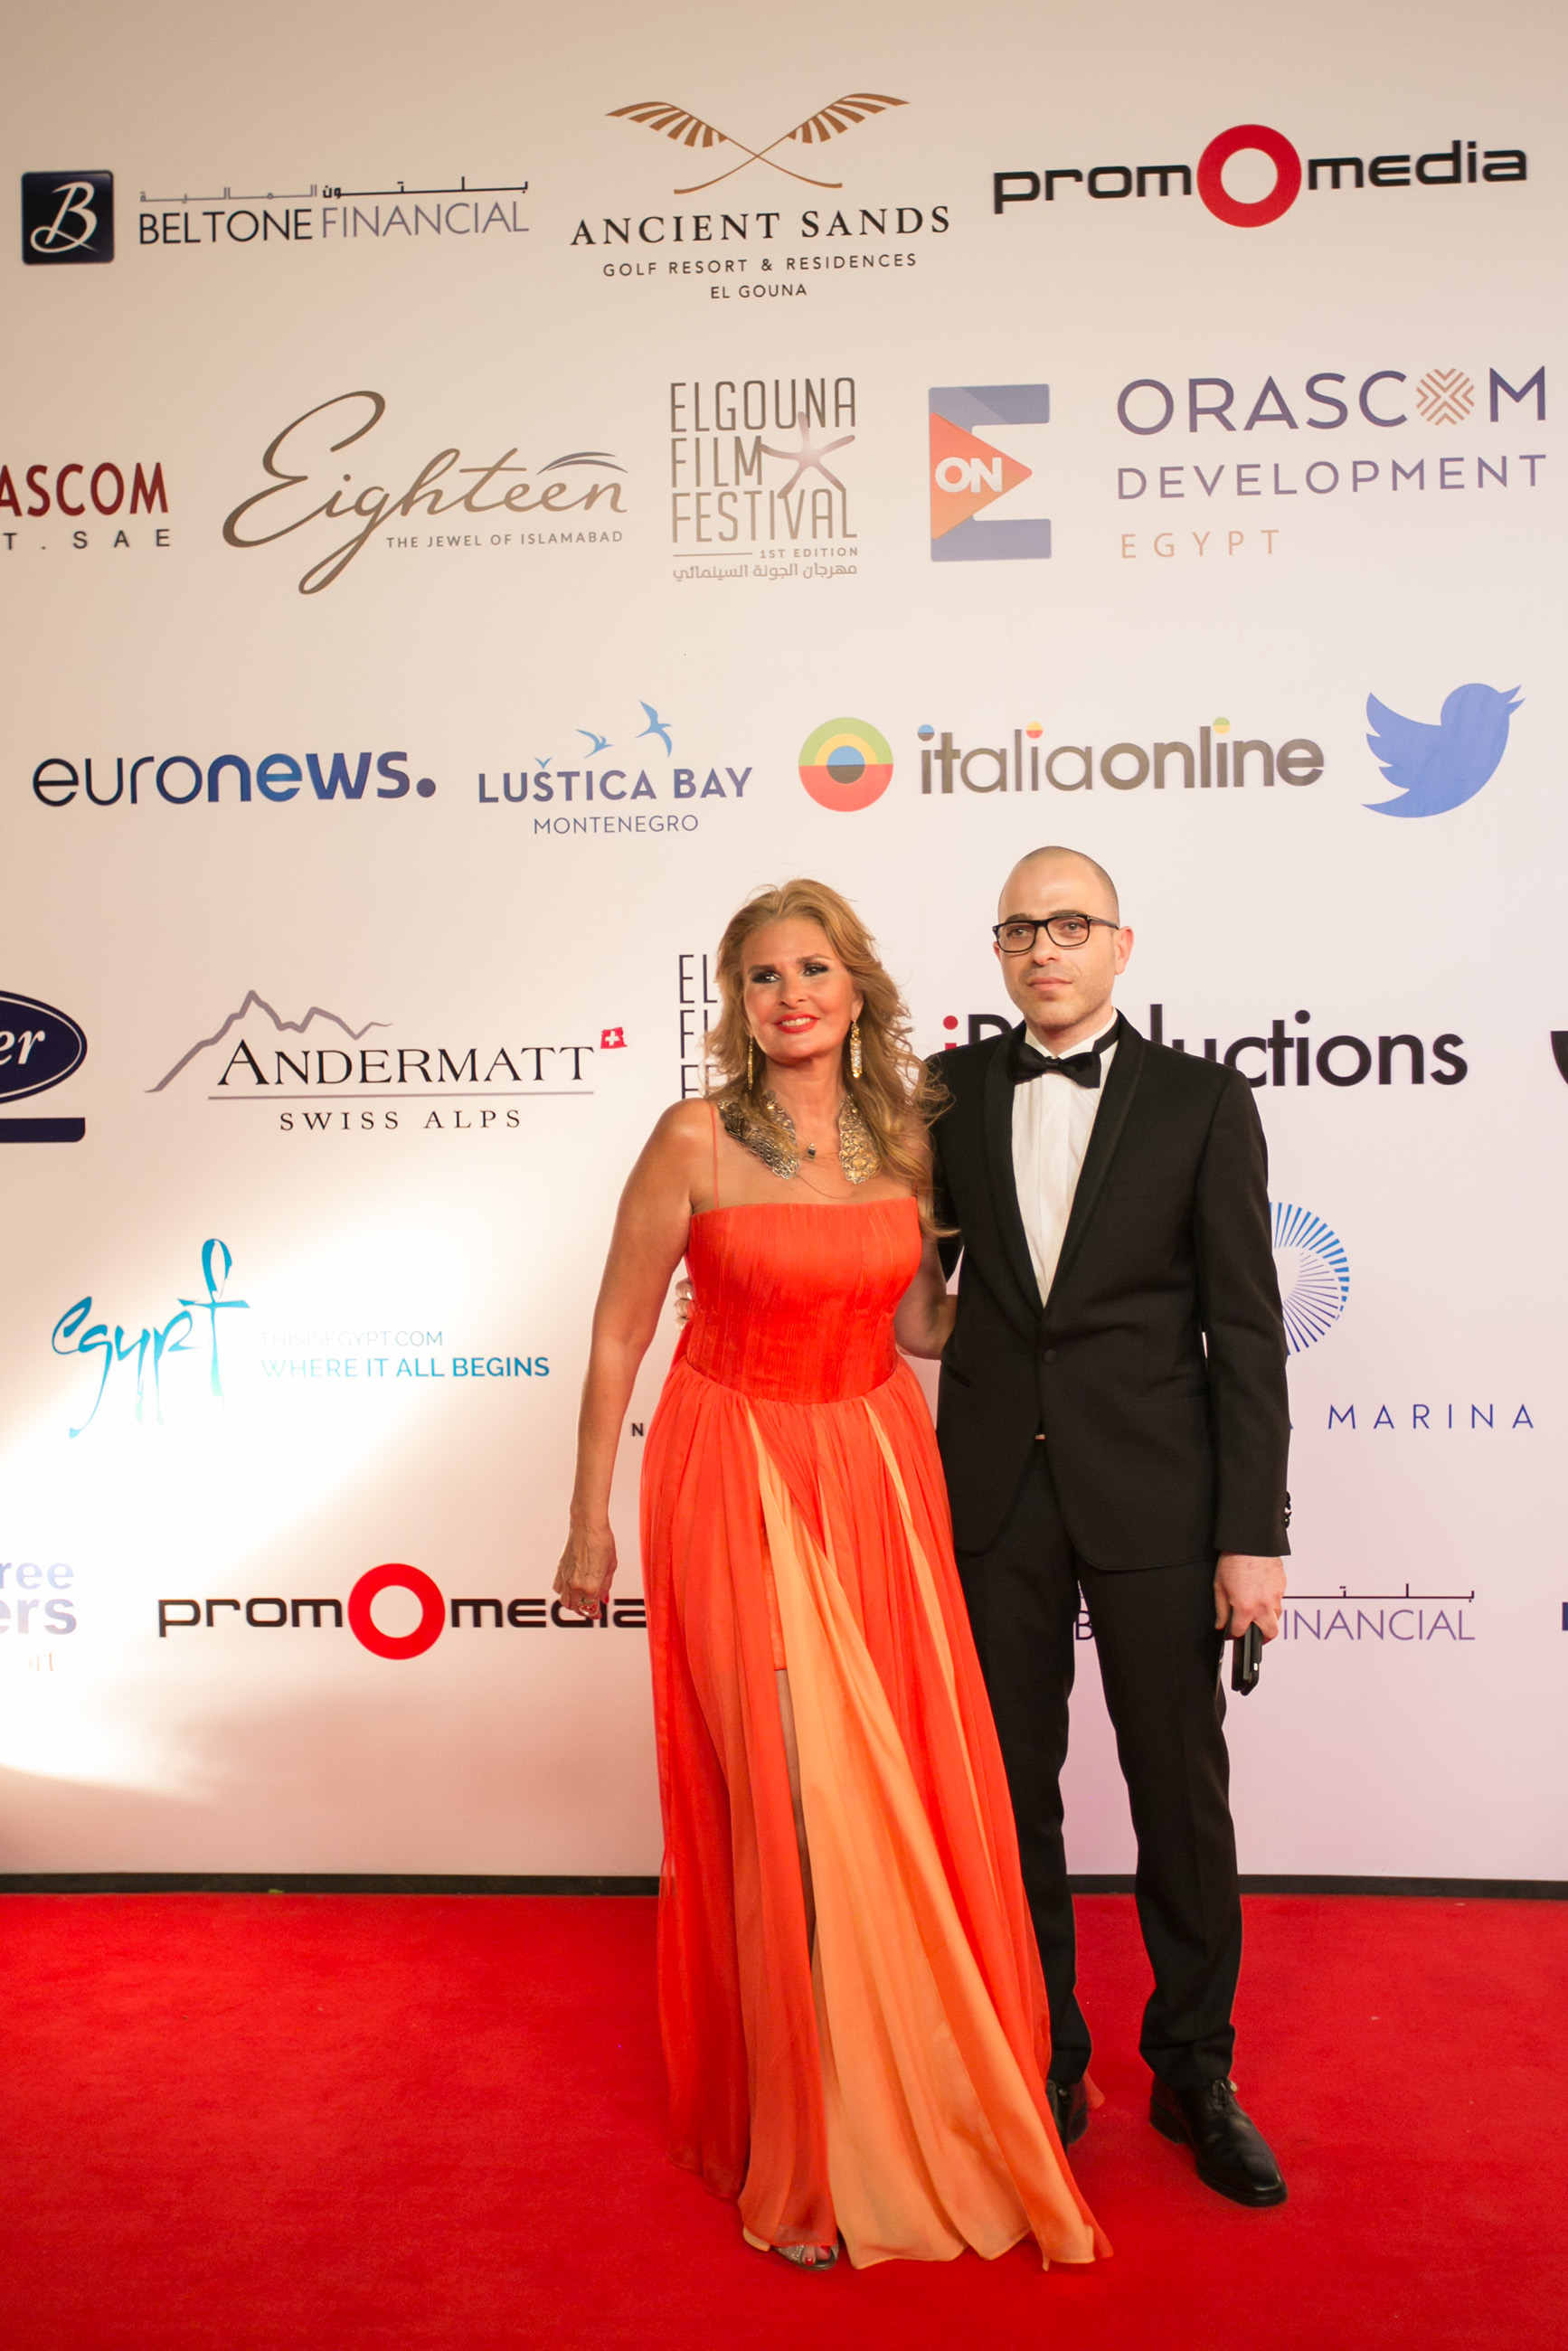 The First Edition Of El Gouna Film Festival Launches With